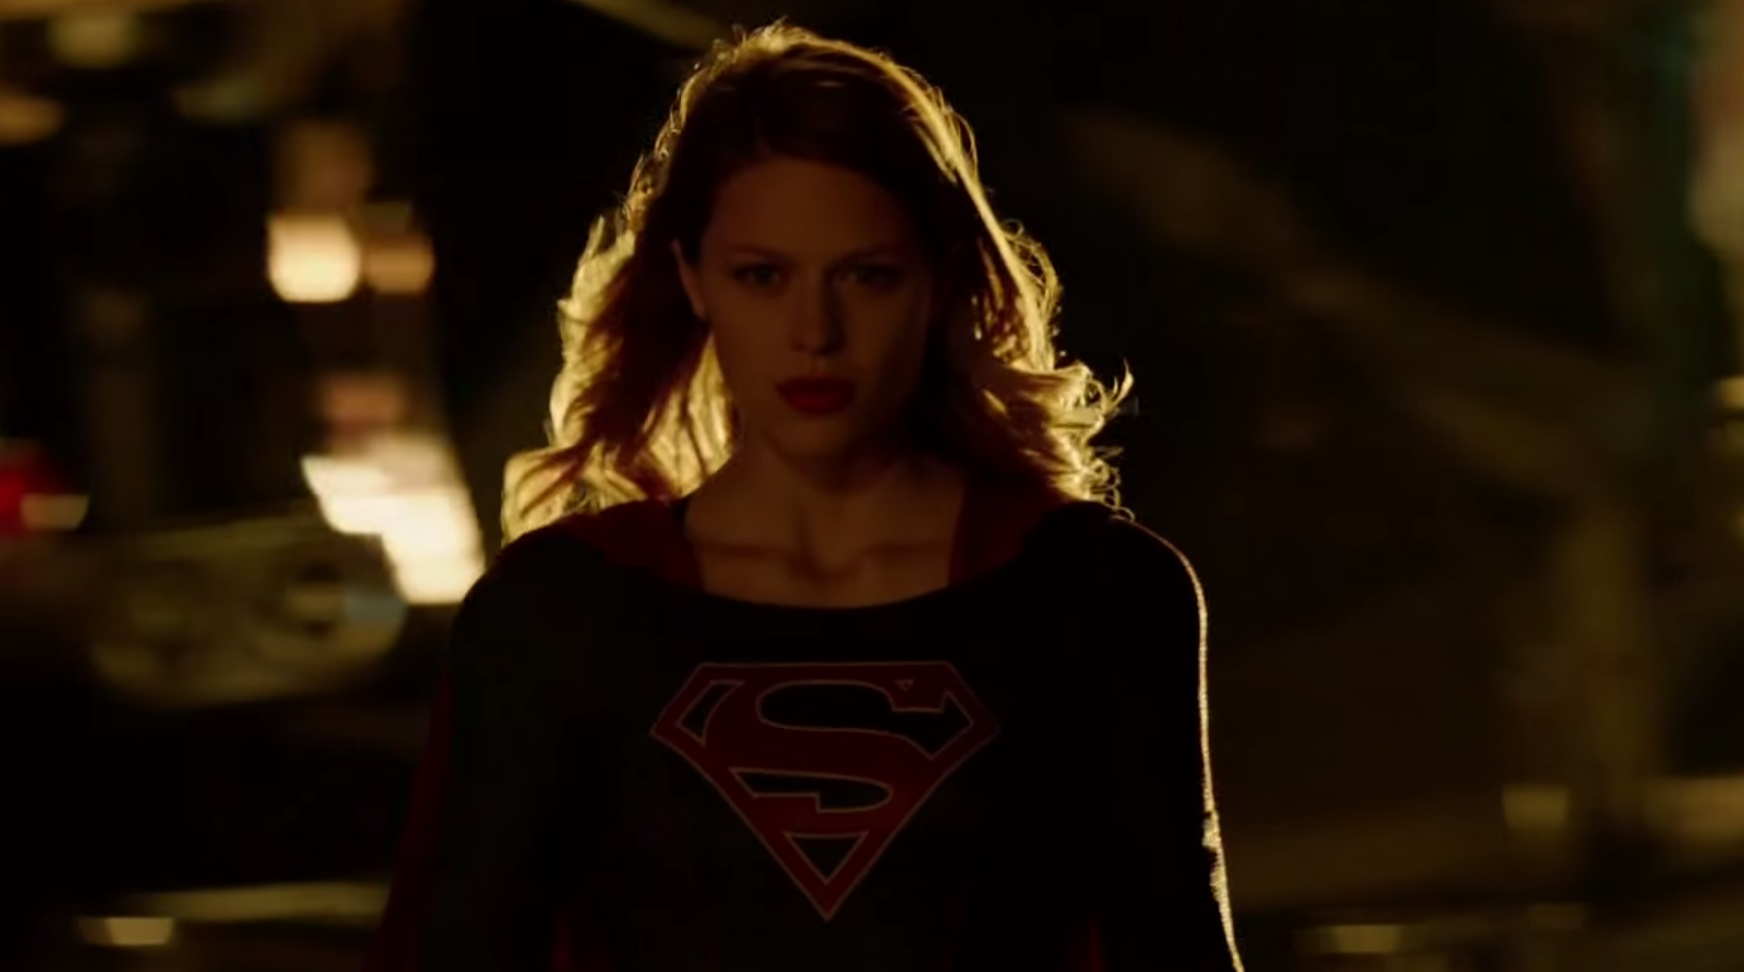 10 Things to Note in the First Trailer for Supergirl